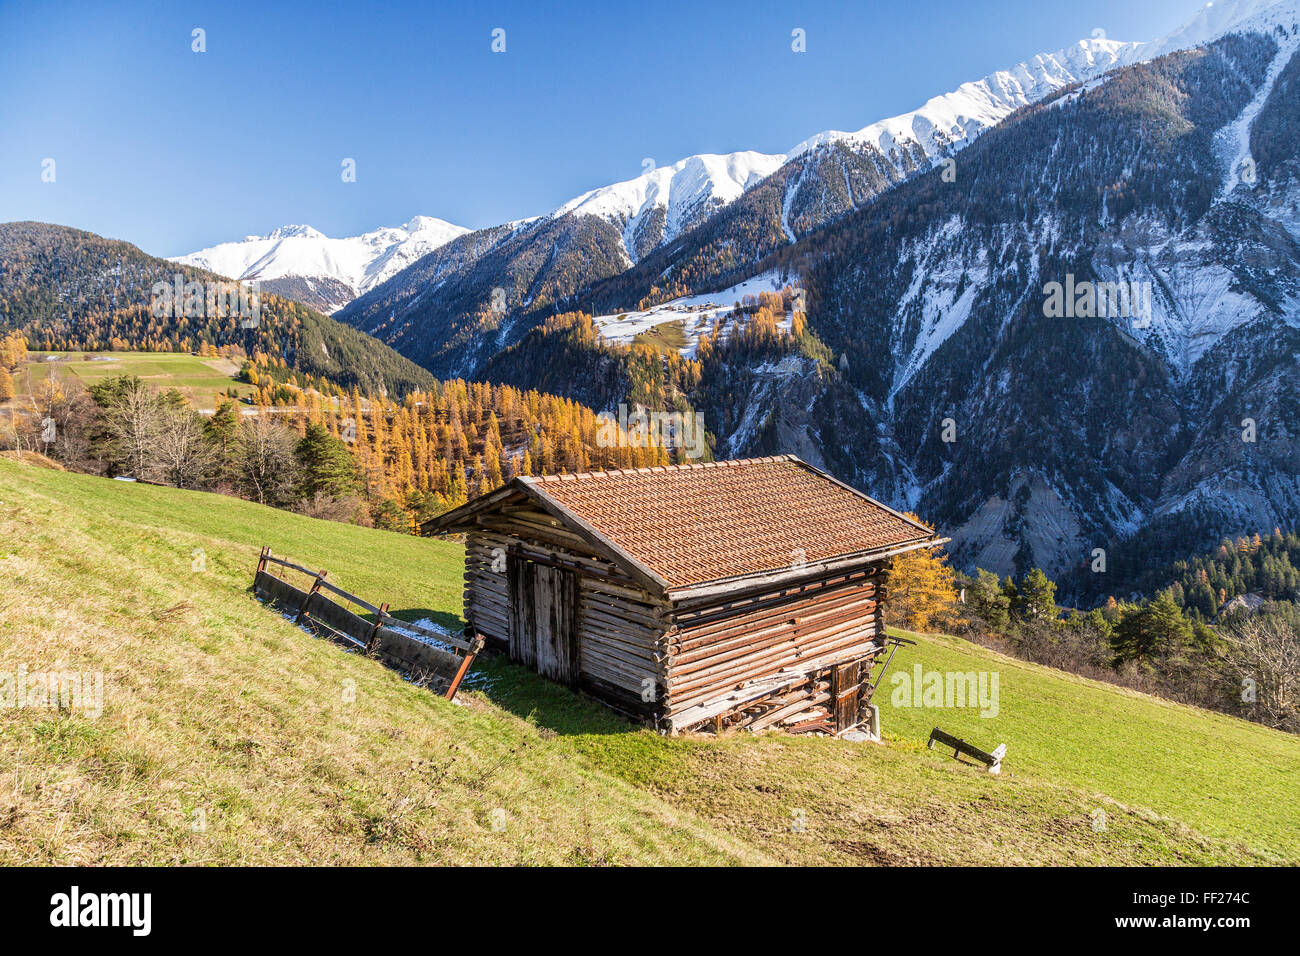 Wooden cabin surrounded by colorful woods and snowy peaks, Schmitten, Albula District, Canton of Graubunden, Switzerland, Stock Photo